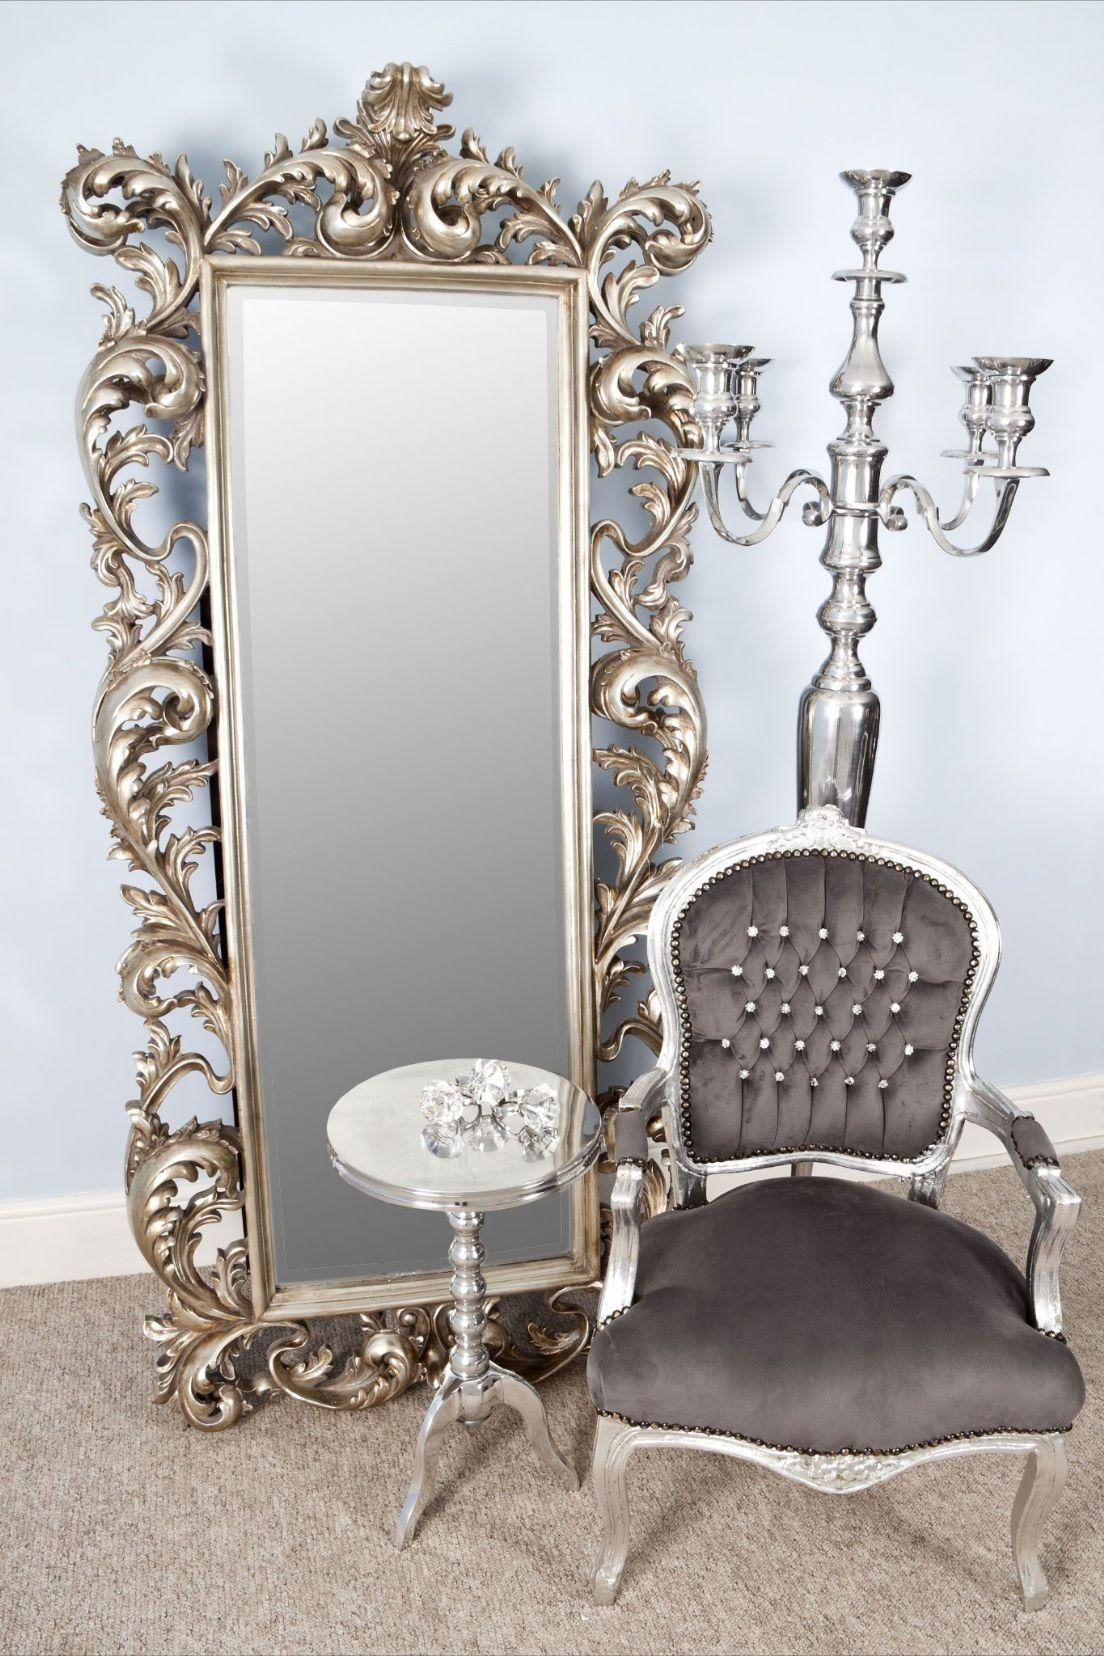 Ornate Mirrors For Sale 118 Awesome Exterior With Large Gold Very In Antique Mirrors For Sale Vintage Mirrors (View 12 of 20)